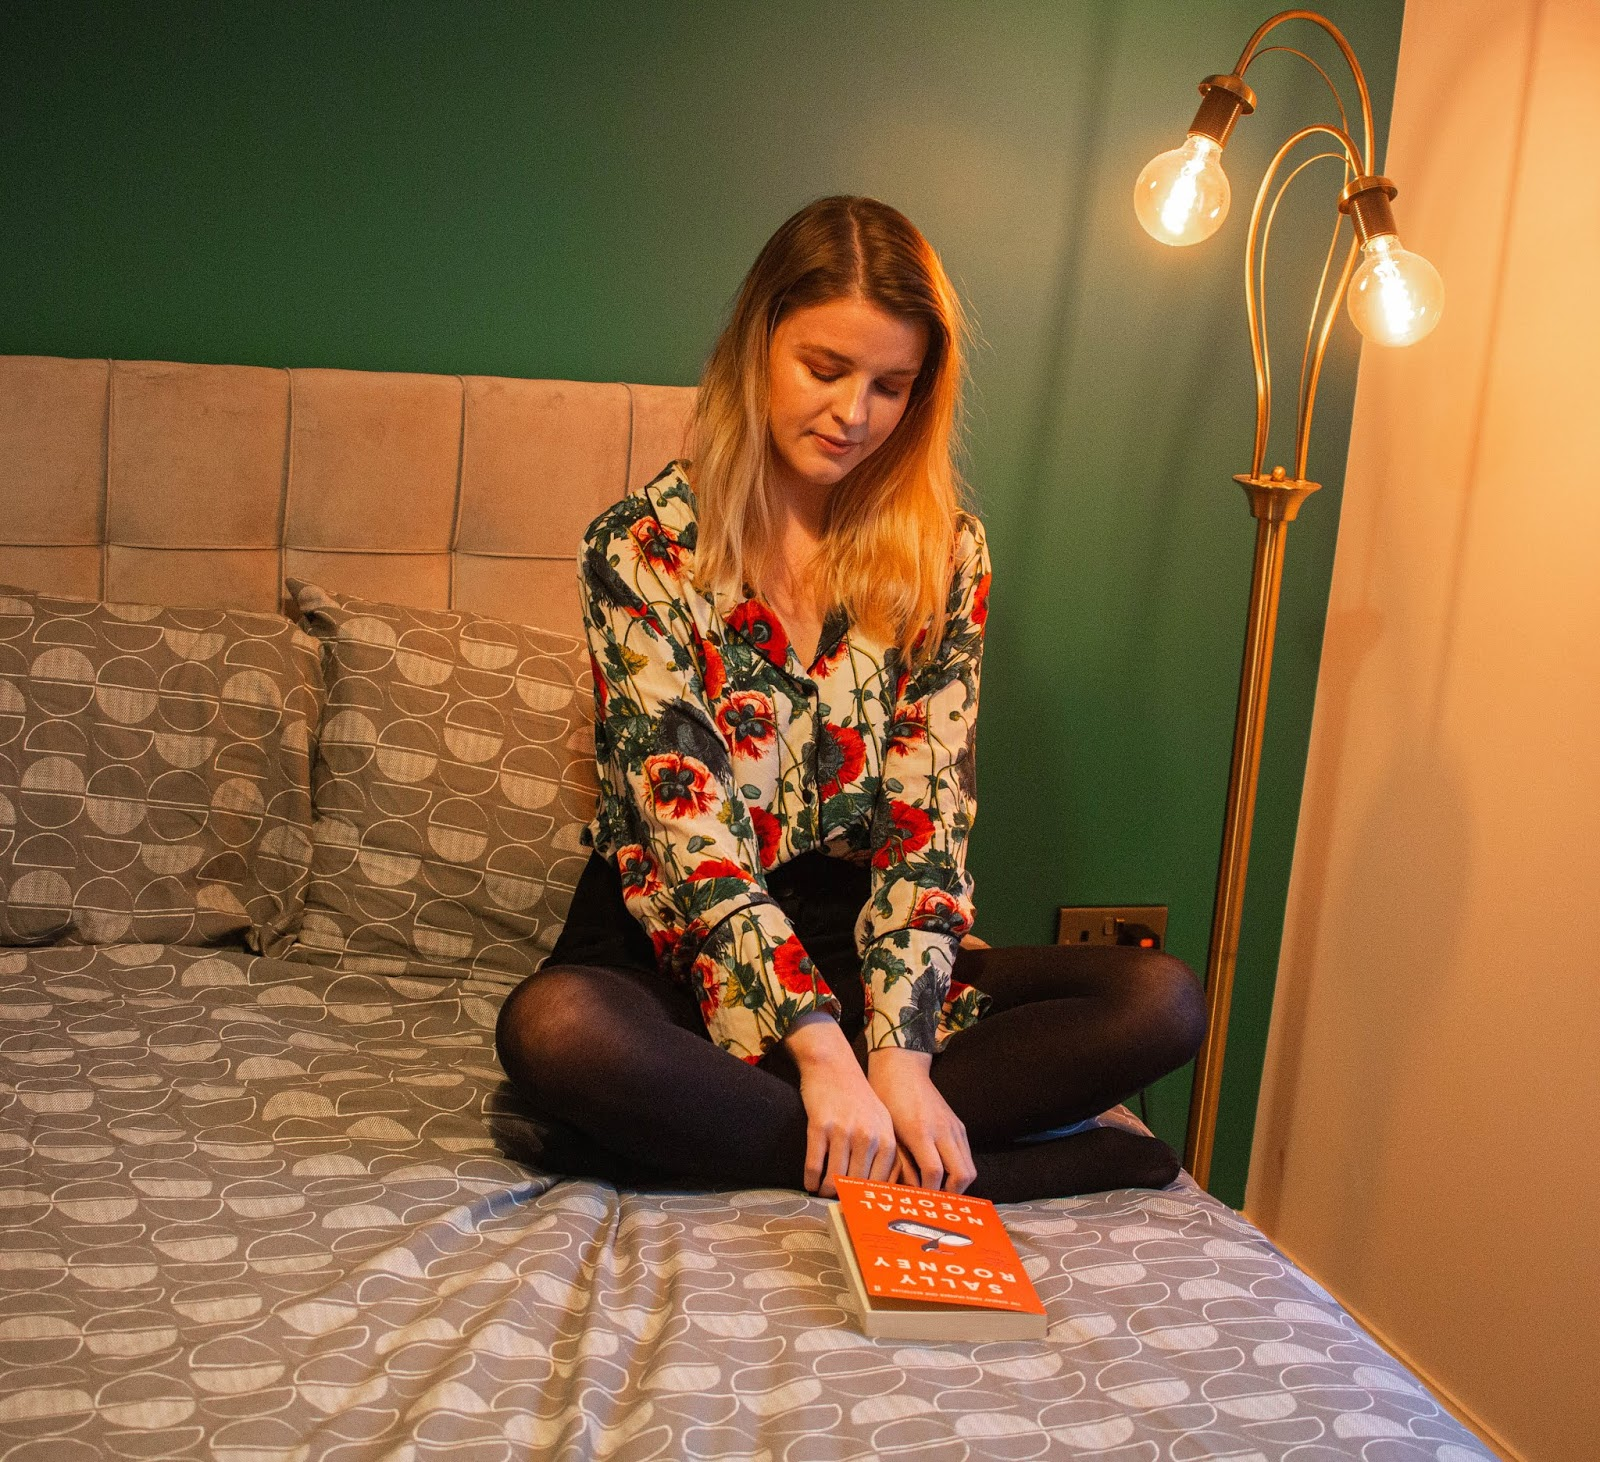 blonde girl chloe harriets sat on bed reading normal people by sally rooney for chloe harriets 2020 book club